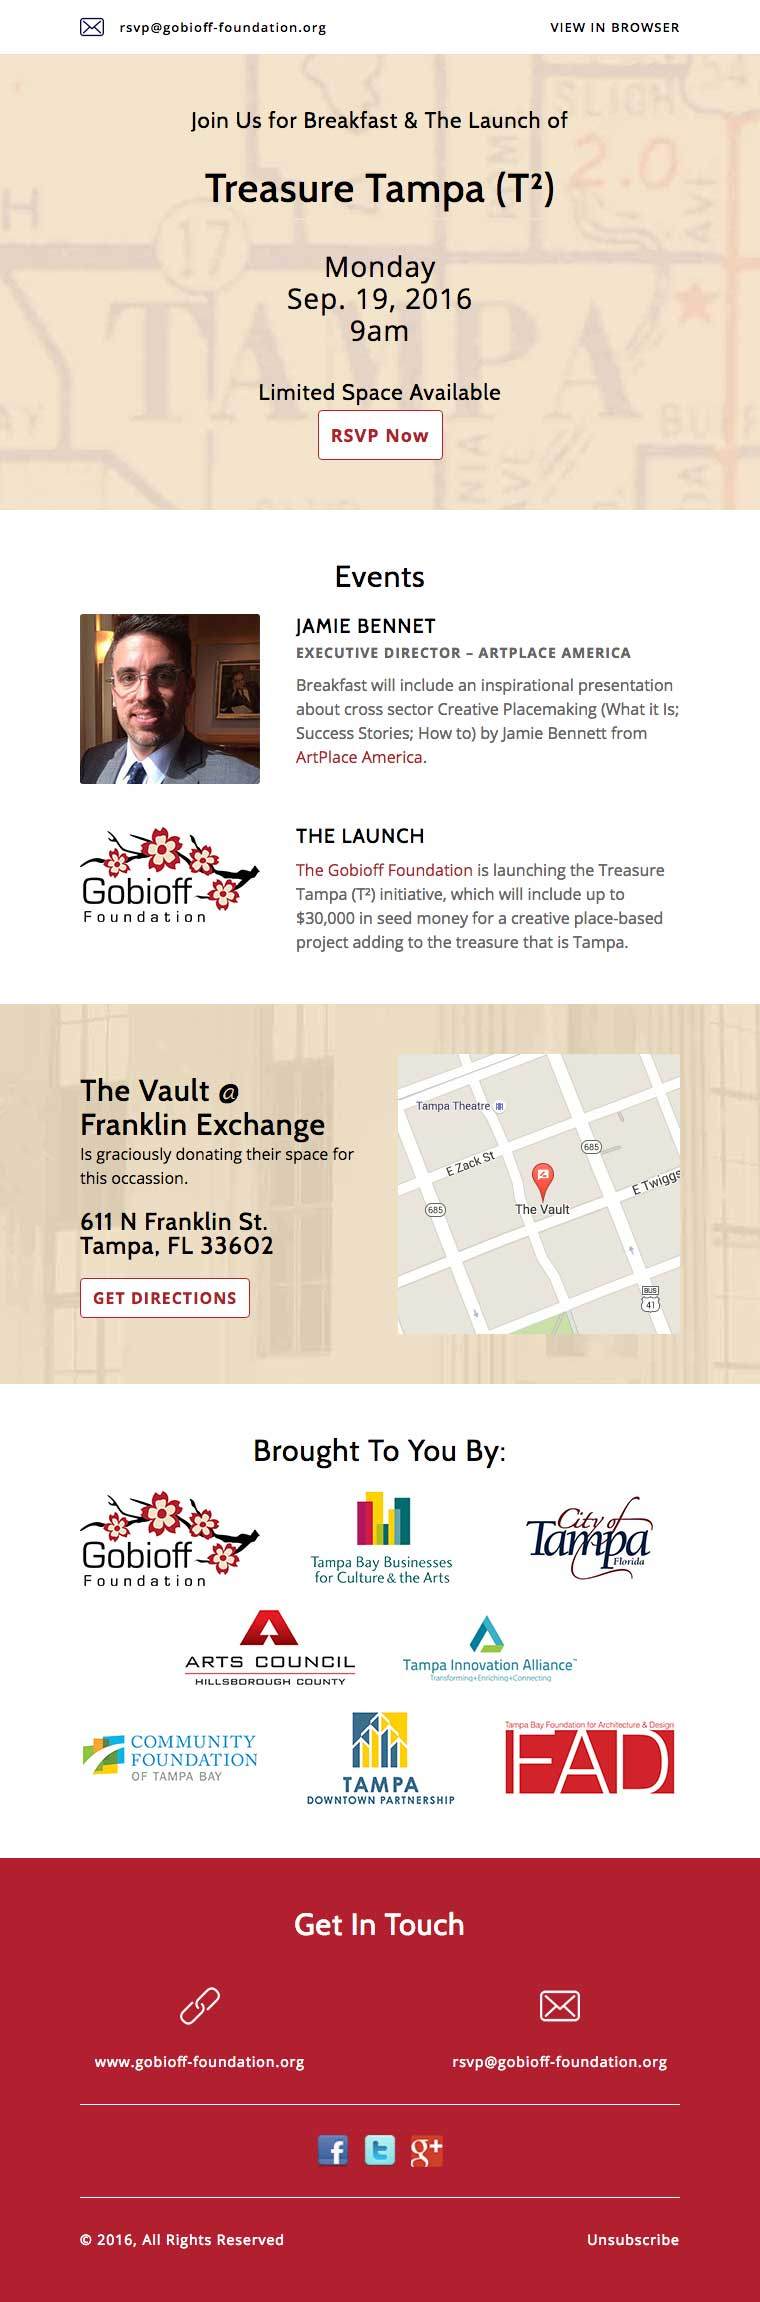 gobioff-foundation-treasure-tampa-email